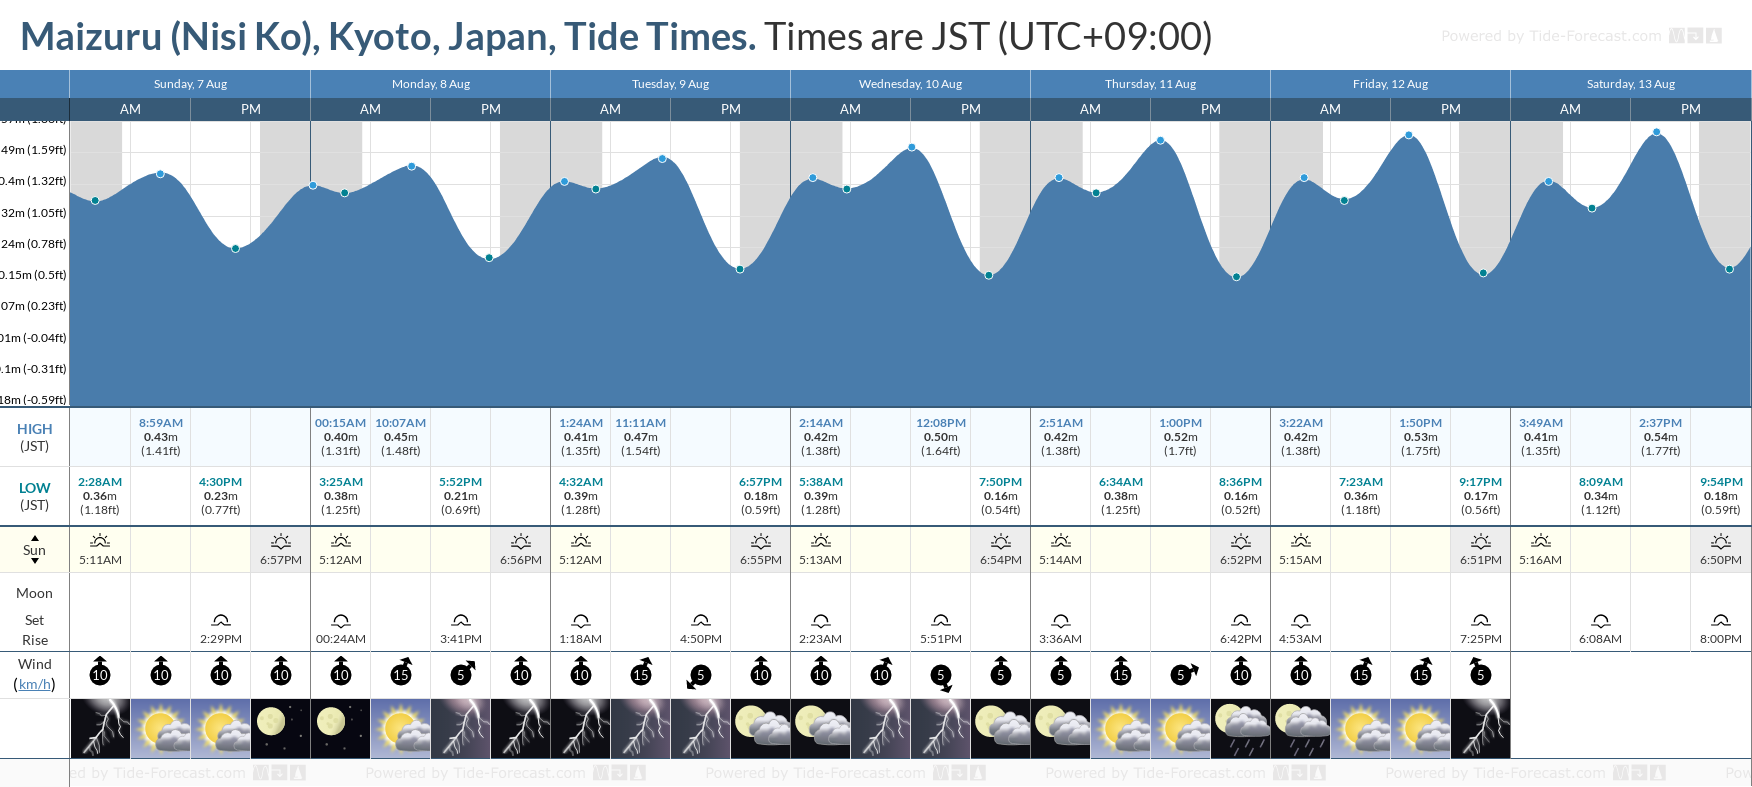 Maizuru (Nisi Ko), Kyoto, Japan Tide Chart including high and low tide tide times for the next 7 days